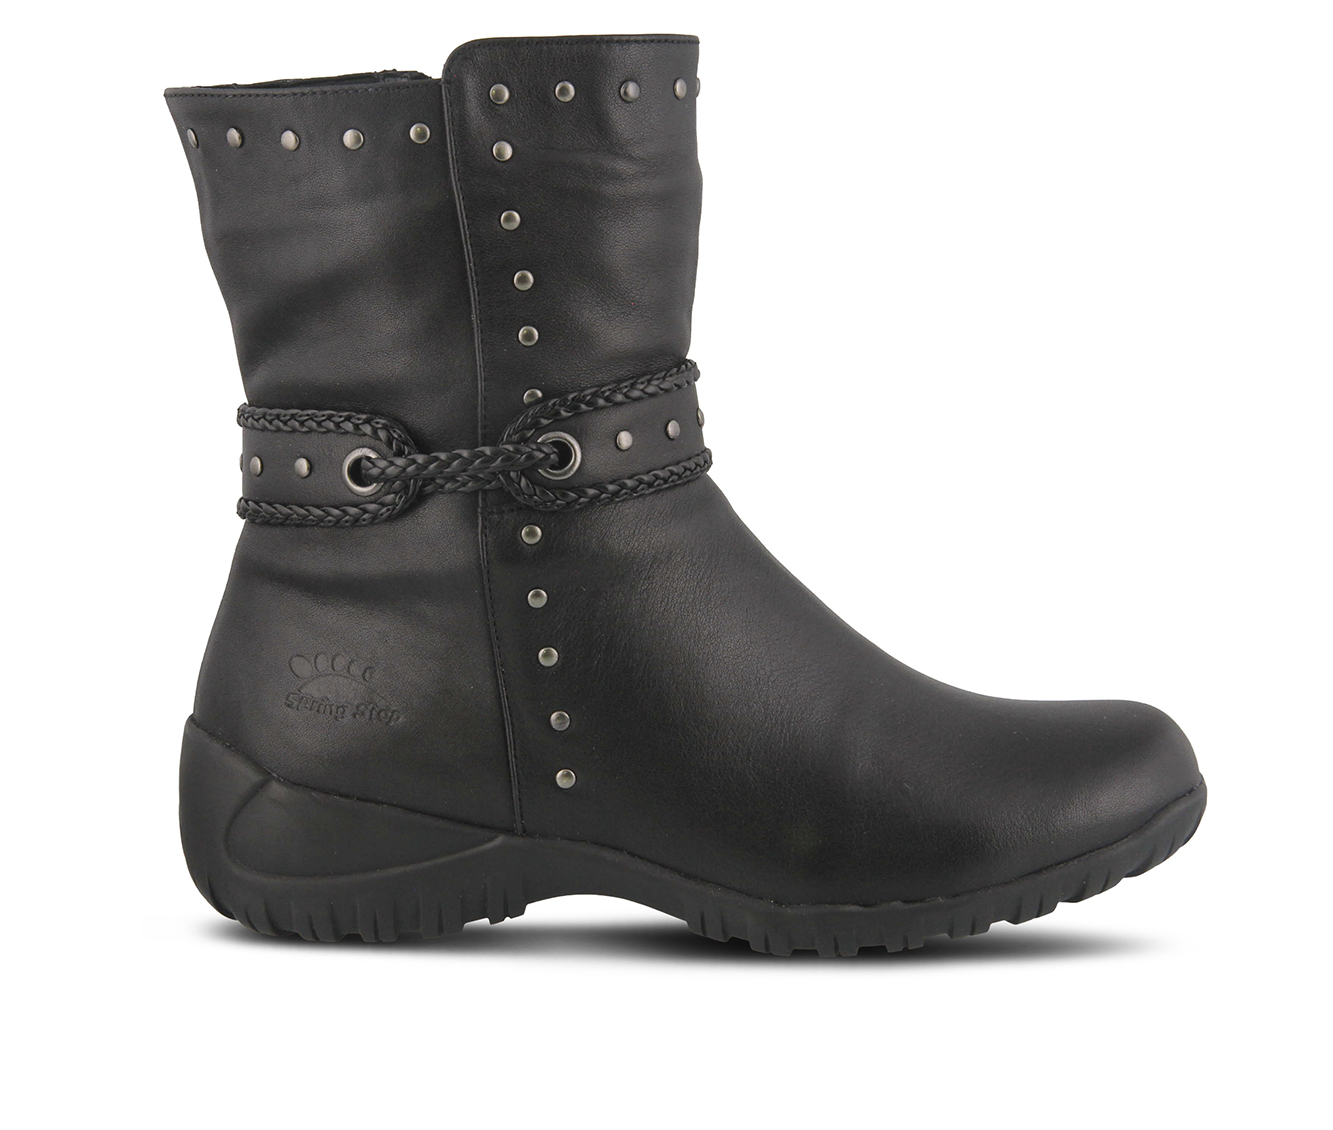 SPRING STEP Vermont Women's Boots (Black Leather)